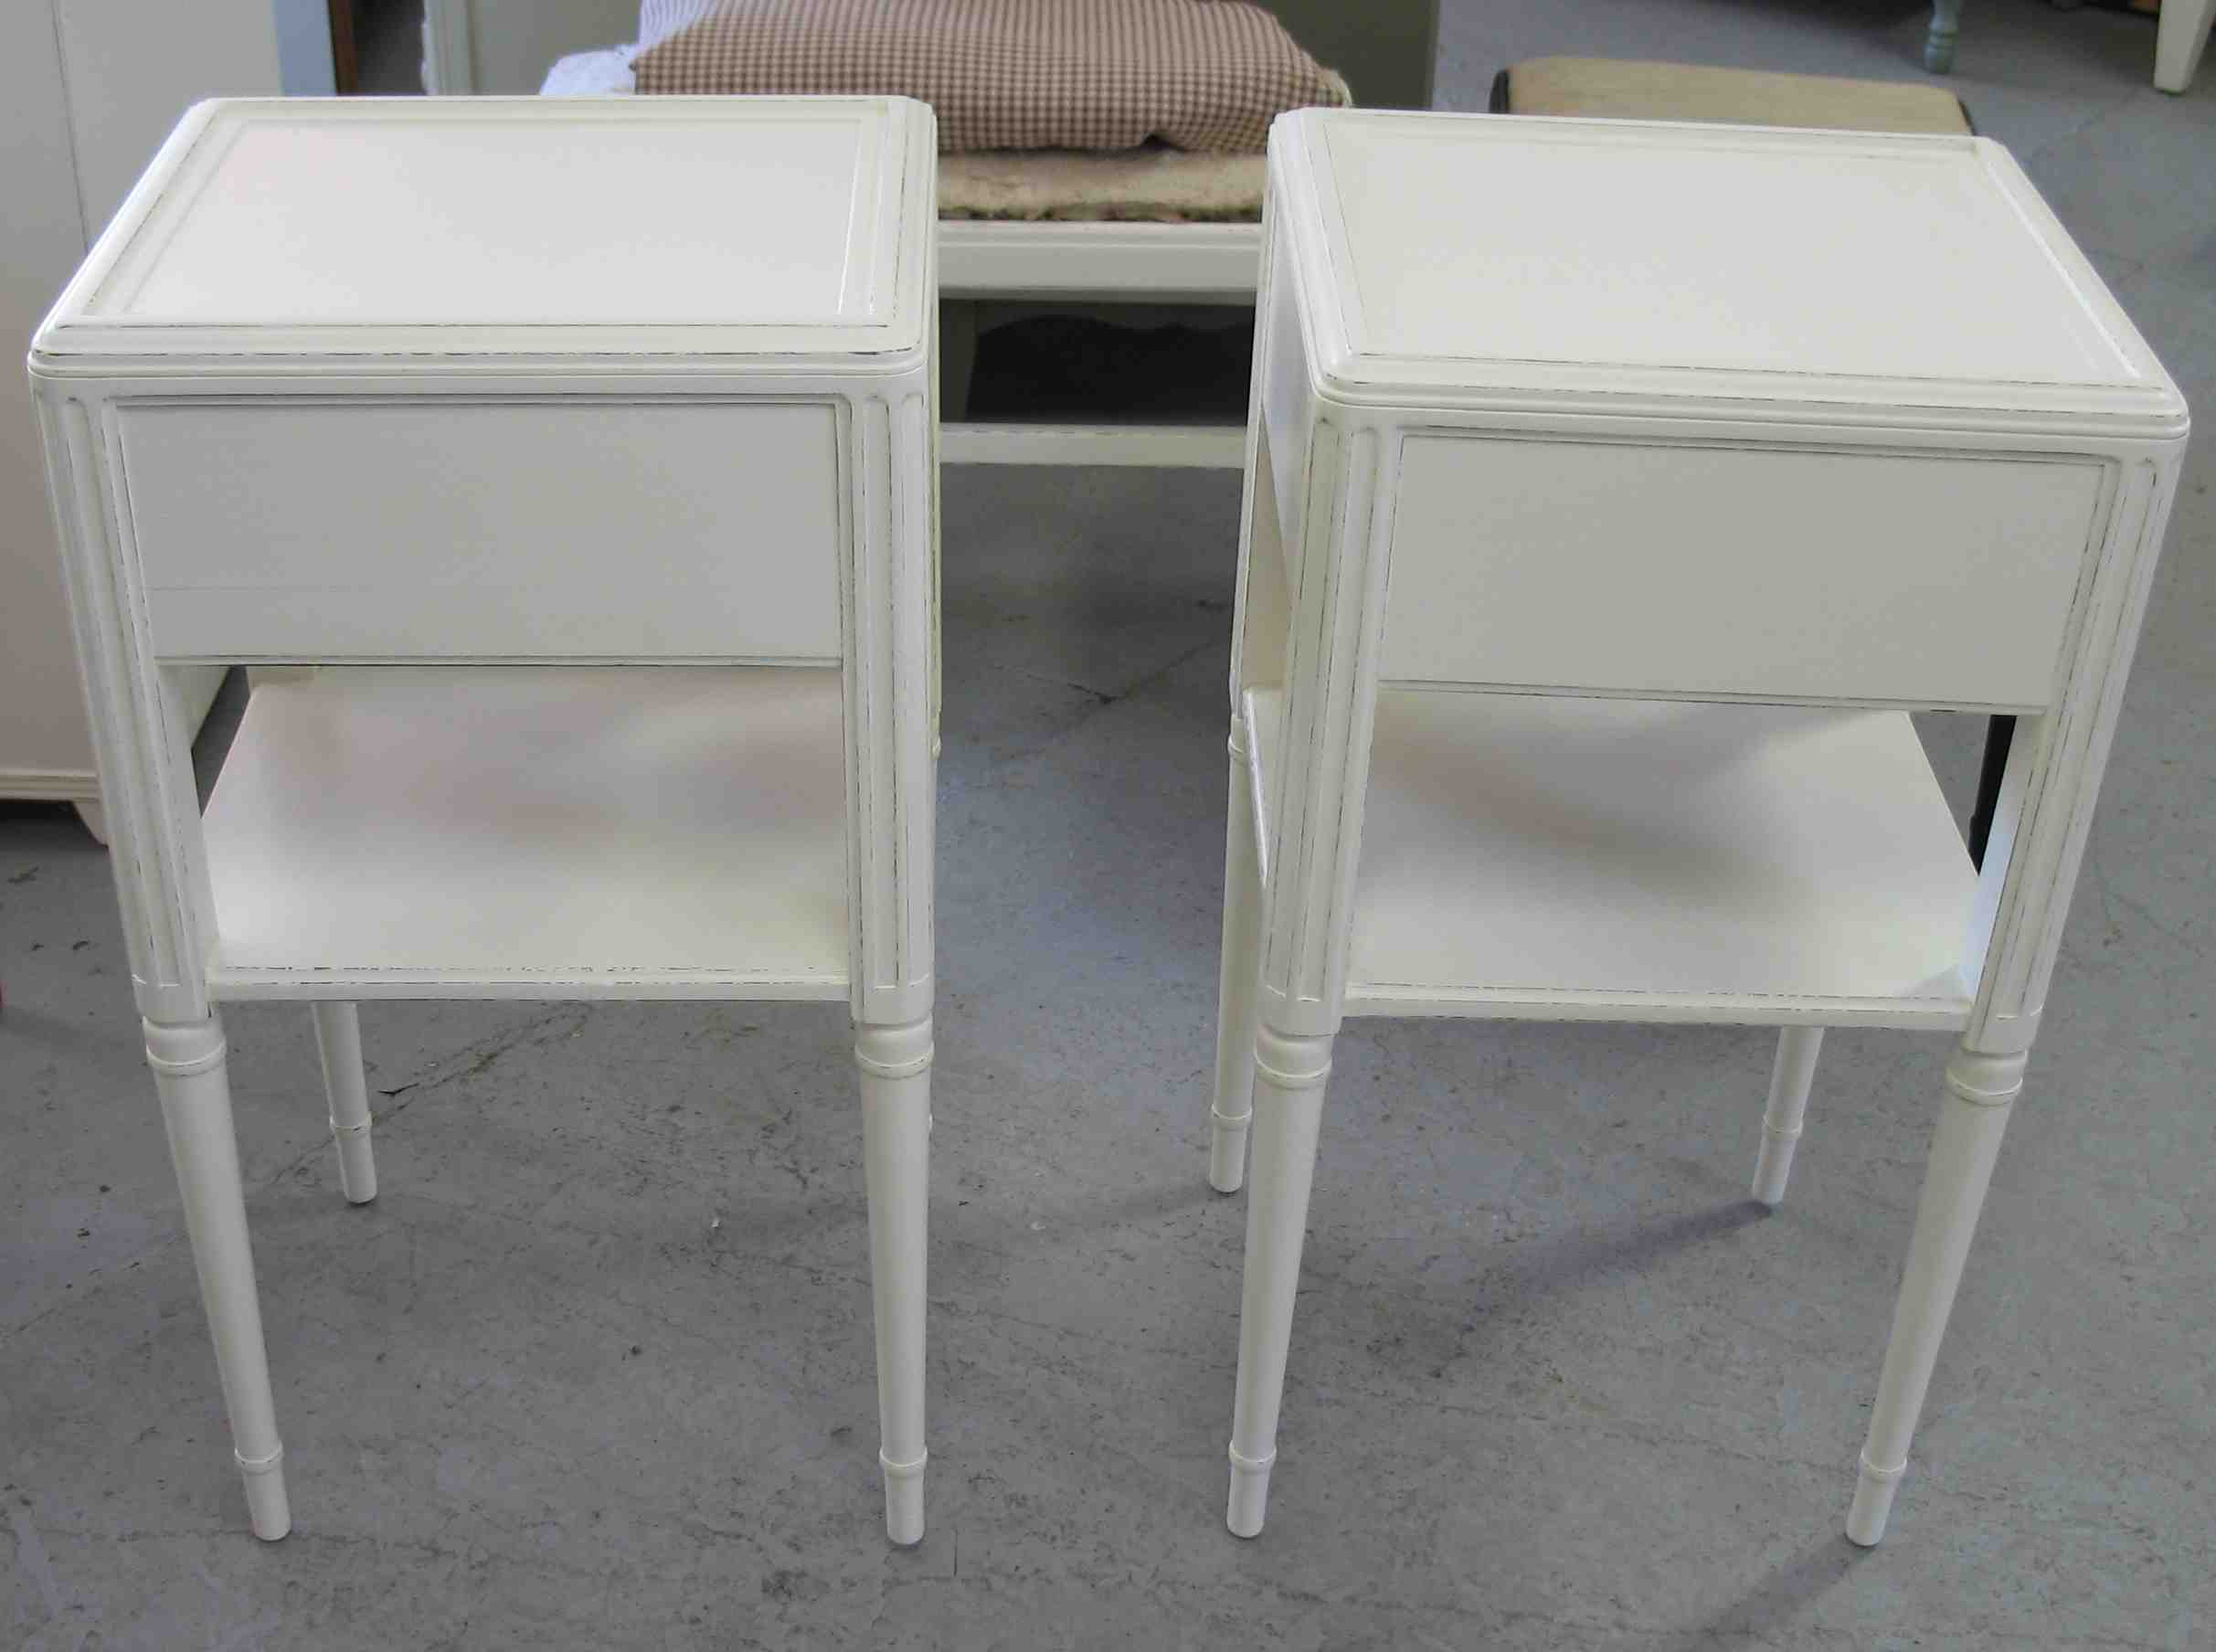 tables outdoor threshold for target living antique storage bench modern glass furniture white tall ott cabinet and room round kijiji accent table vintage finish full size ikea